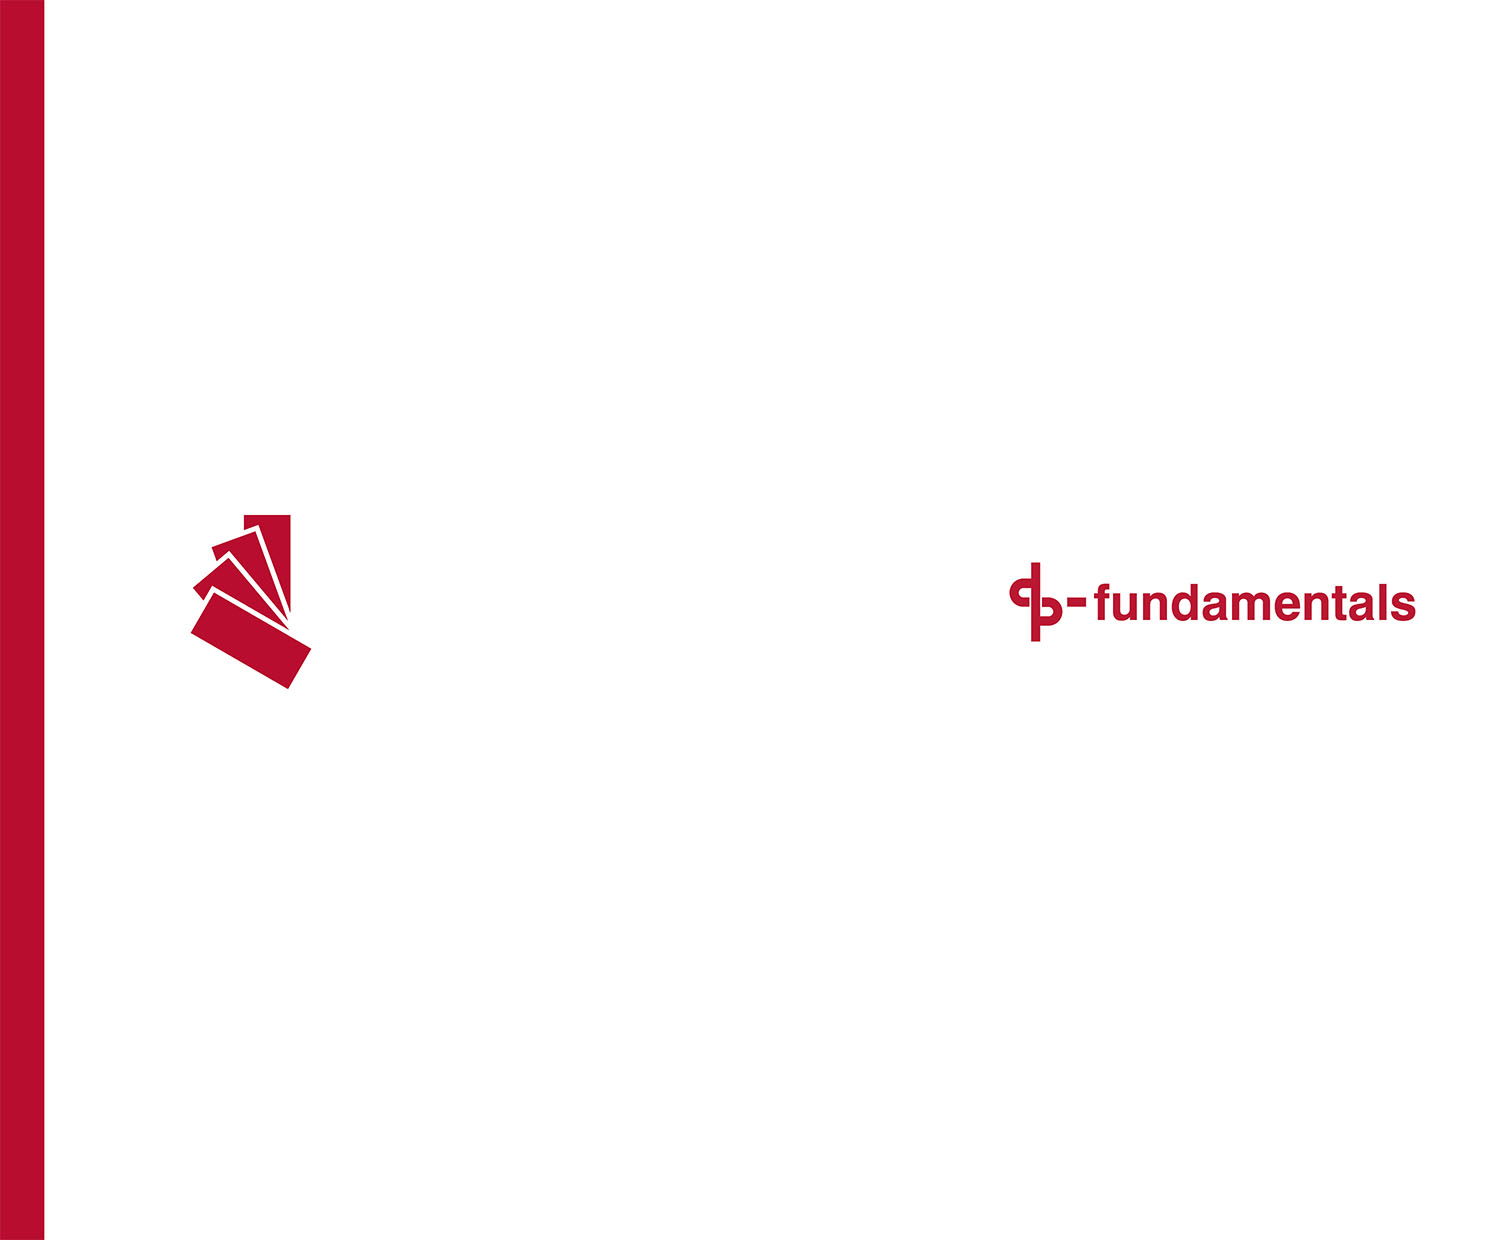 NEW ADDITIONS to our dp-fundamentals collection!